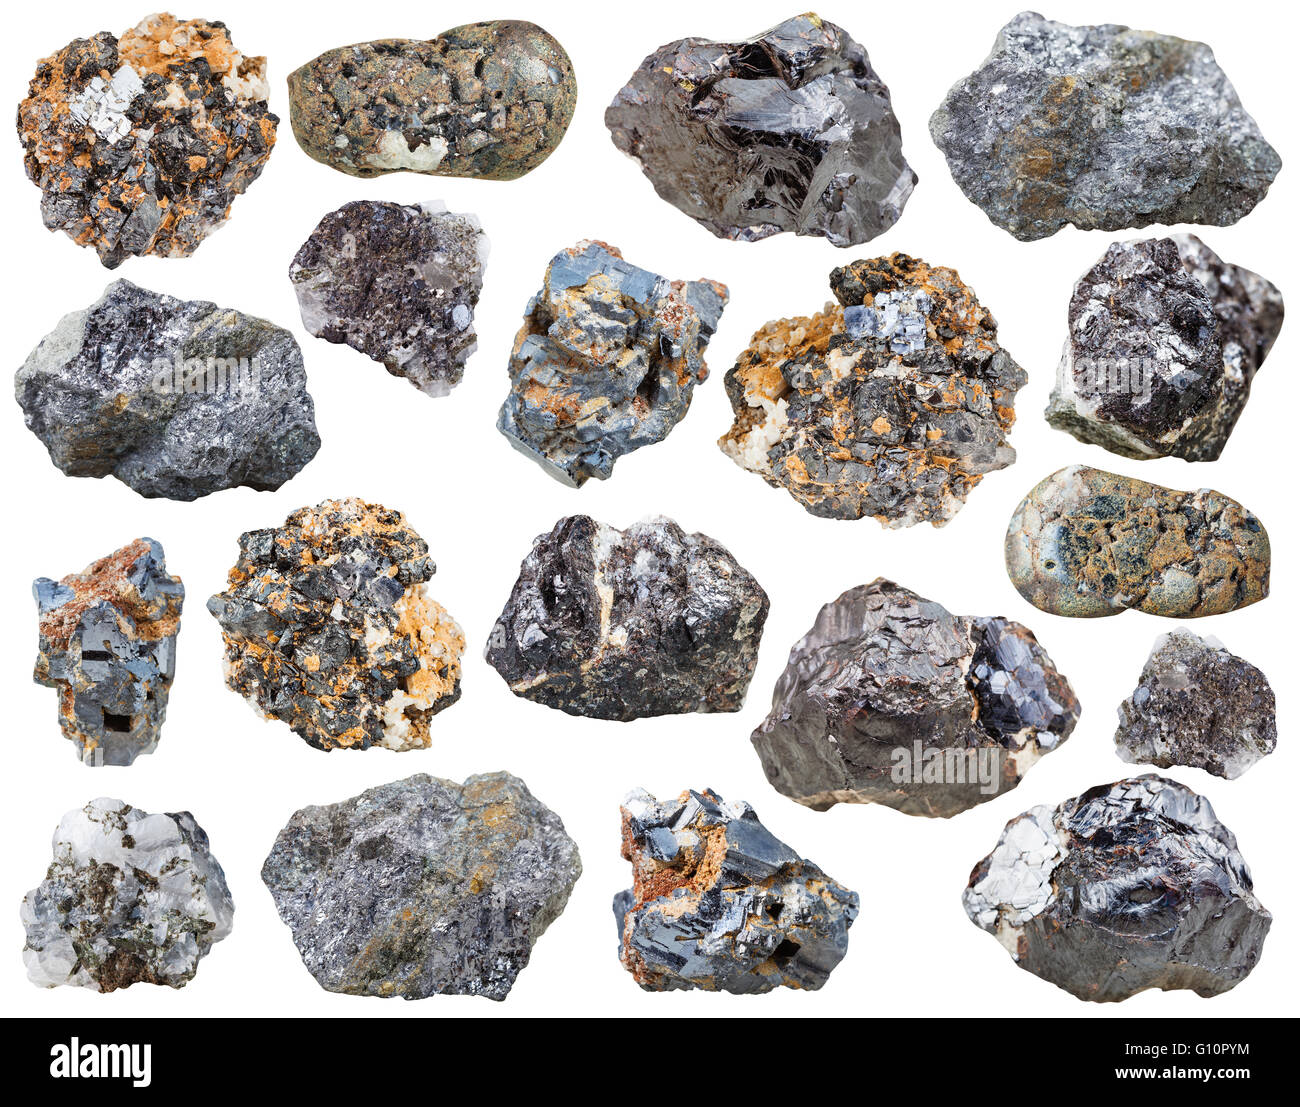 set of various galenite and sphalerite natural mineral stones and crystals isolated on white background - Stock Image